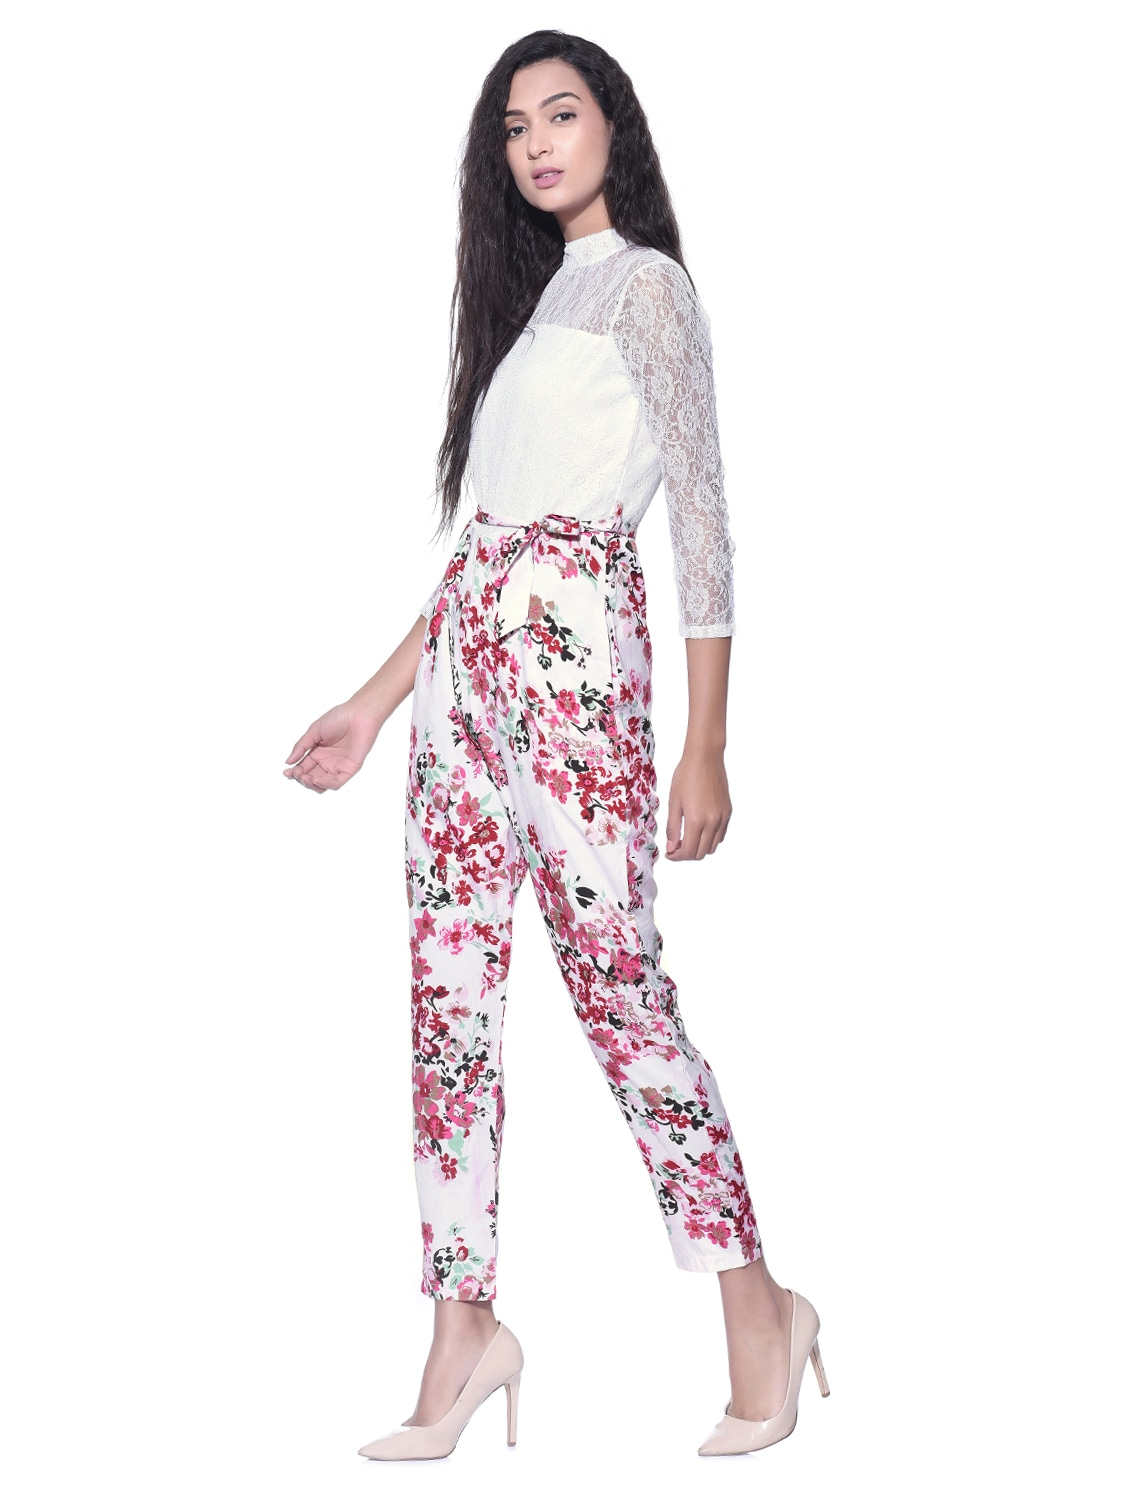 da8b9d929833 Buy Floral Crepe Full Leg Jumpsuit for Women from Aayu for ₹546 at 45% off